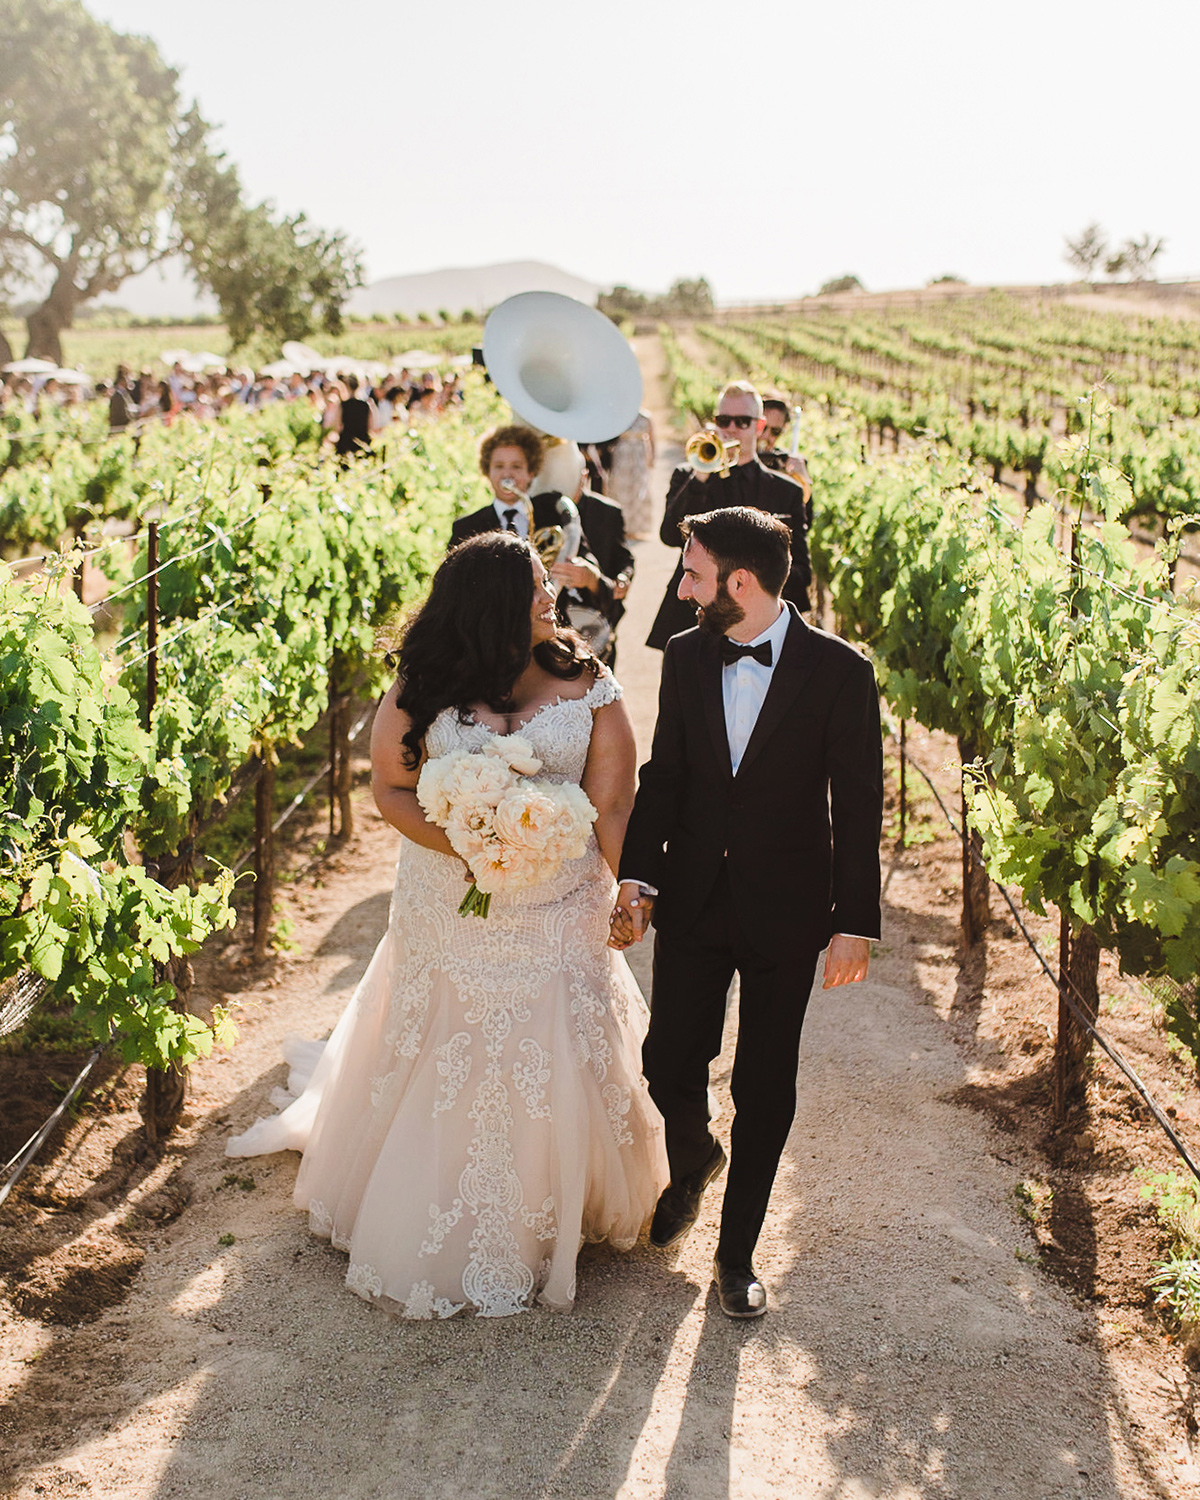 bride and groom walk through vineyard with band and guests behind them